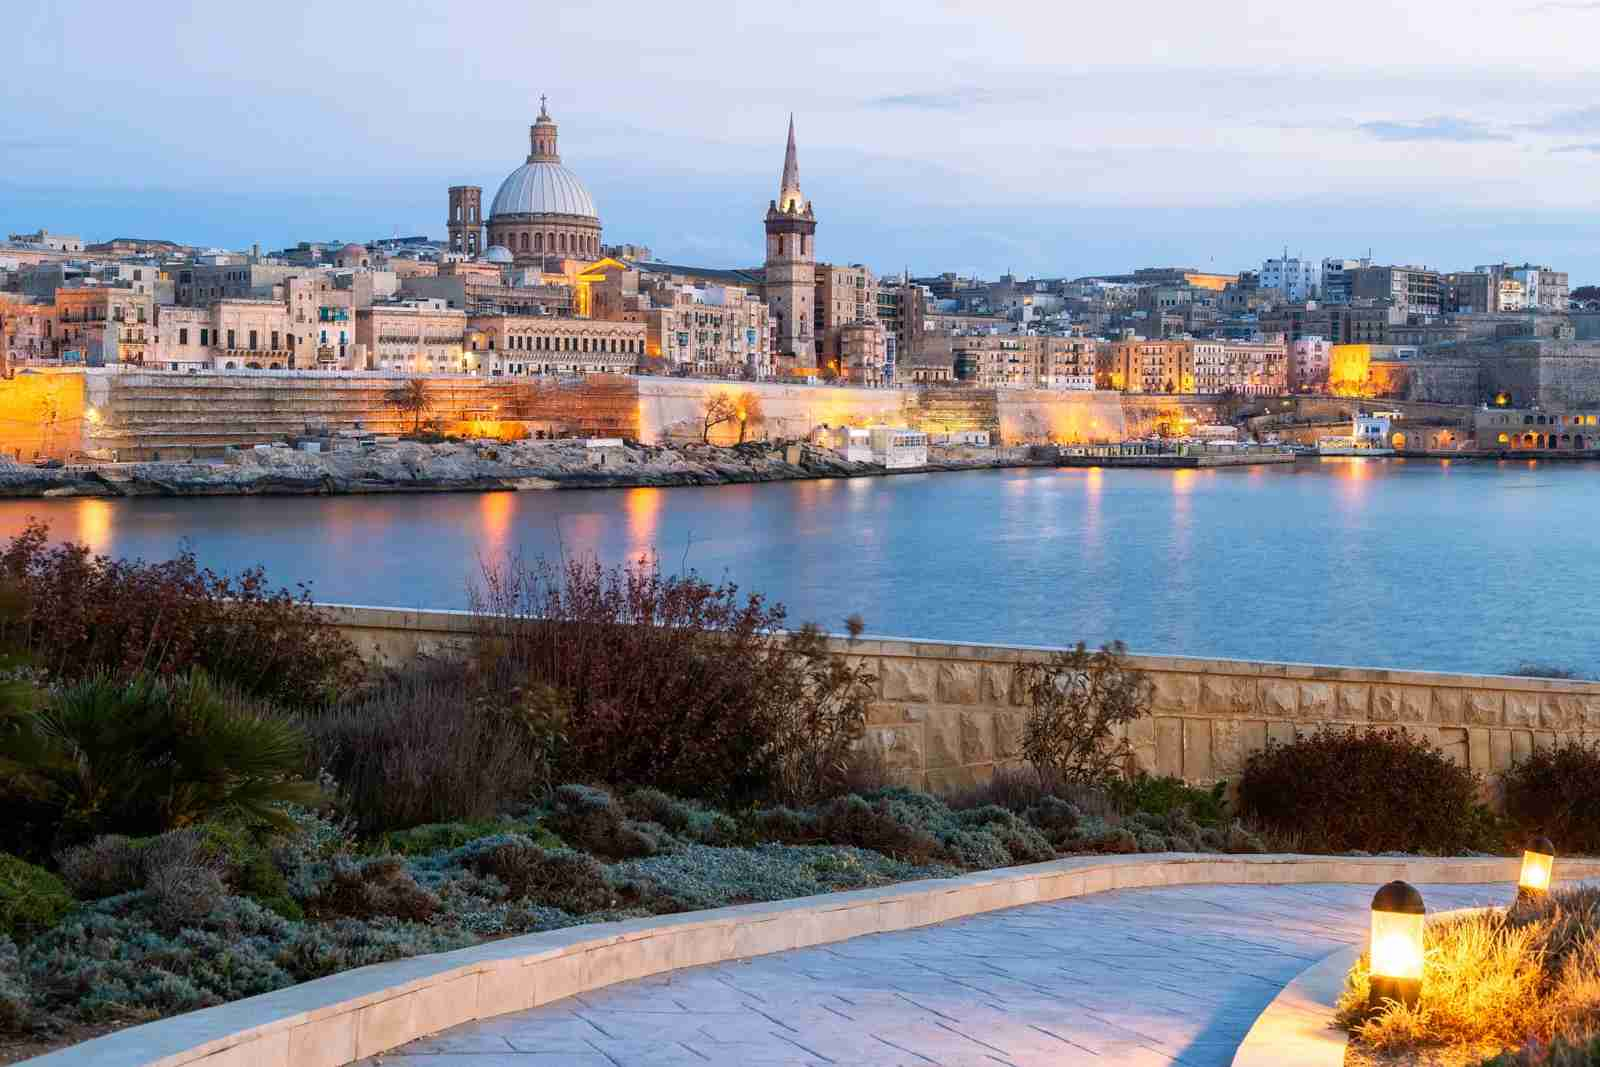 The skyline of Valetta, Malta. (Photo by joe daniel price / Getty Images)